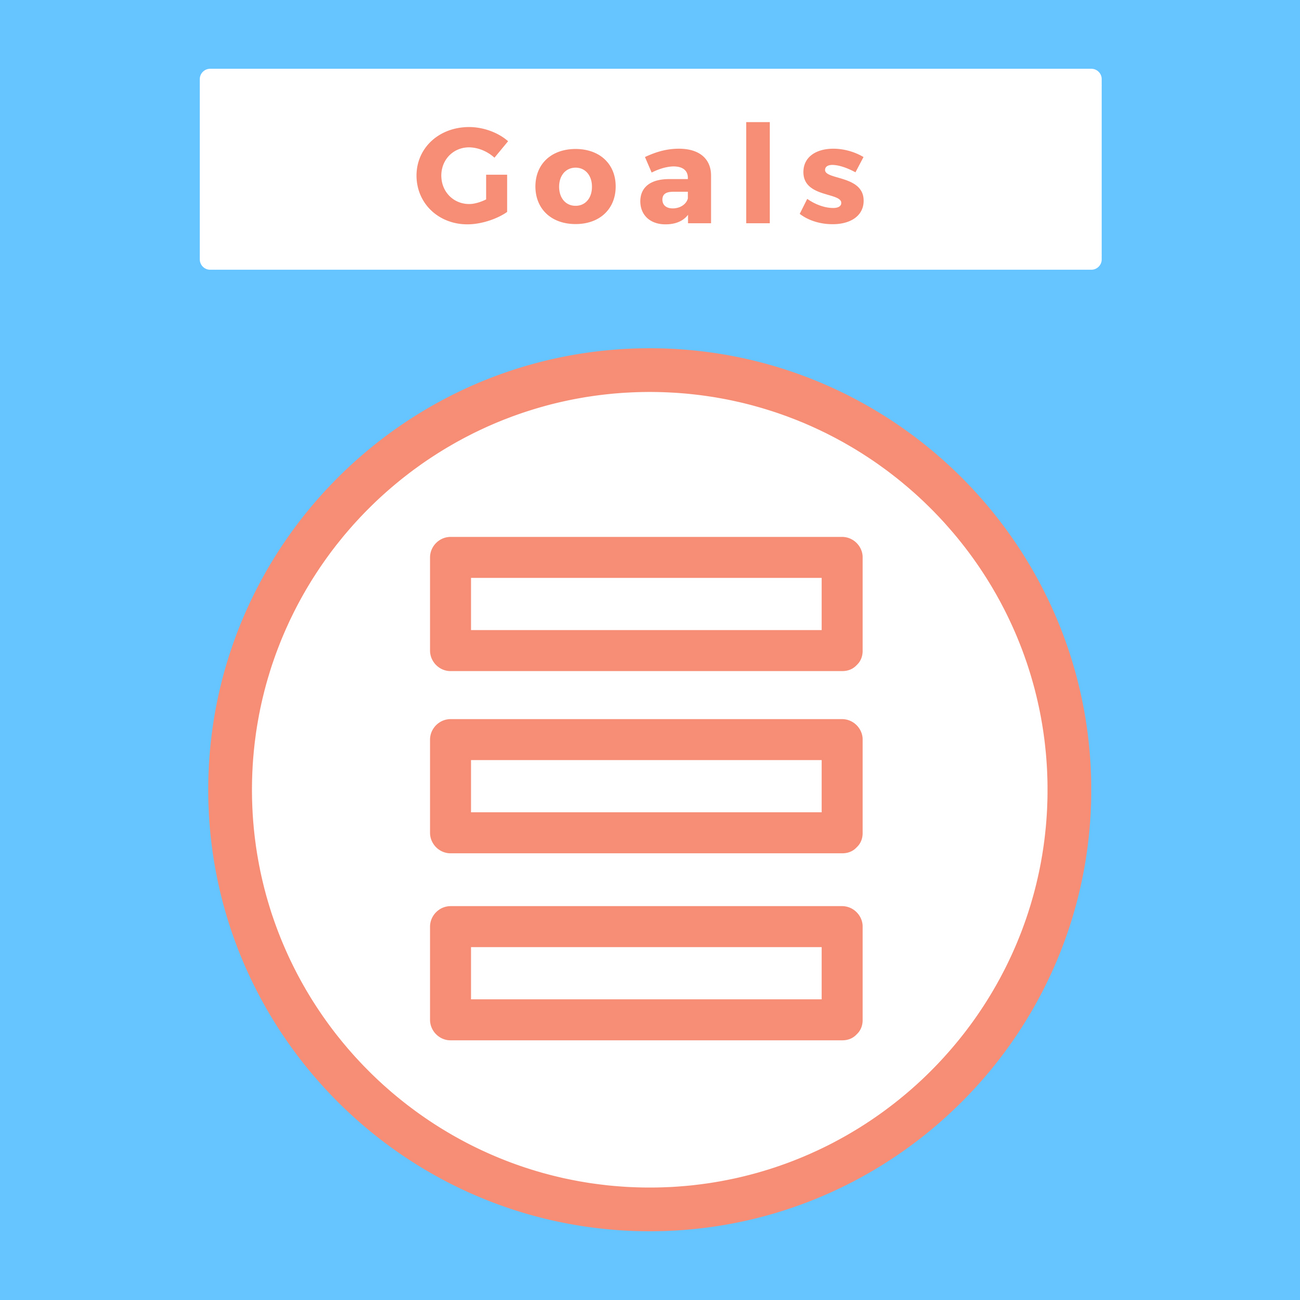 Learn how to set goals and crush them with the newsletter from Finding Life's Corners.